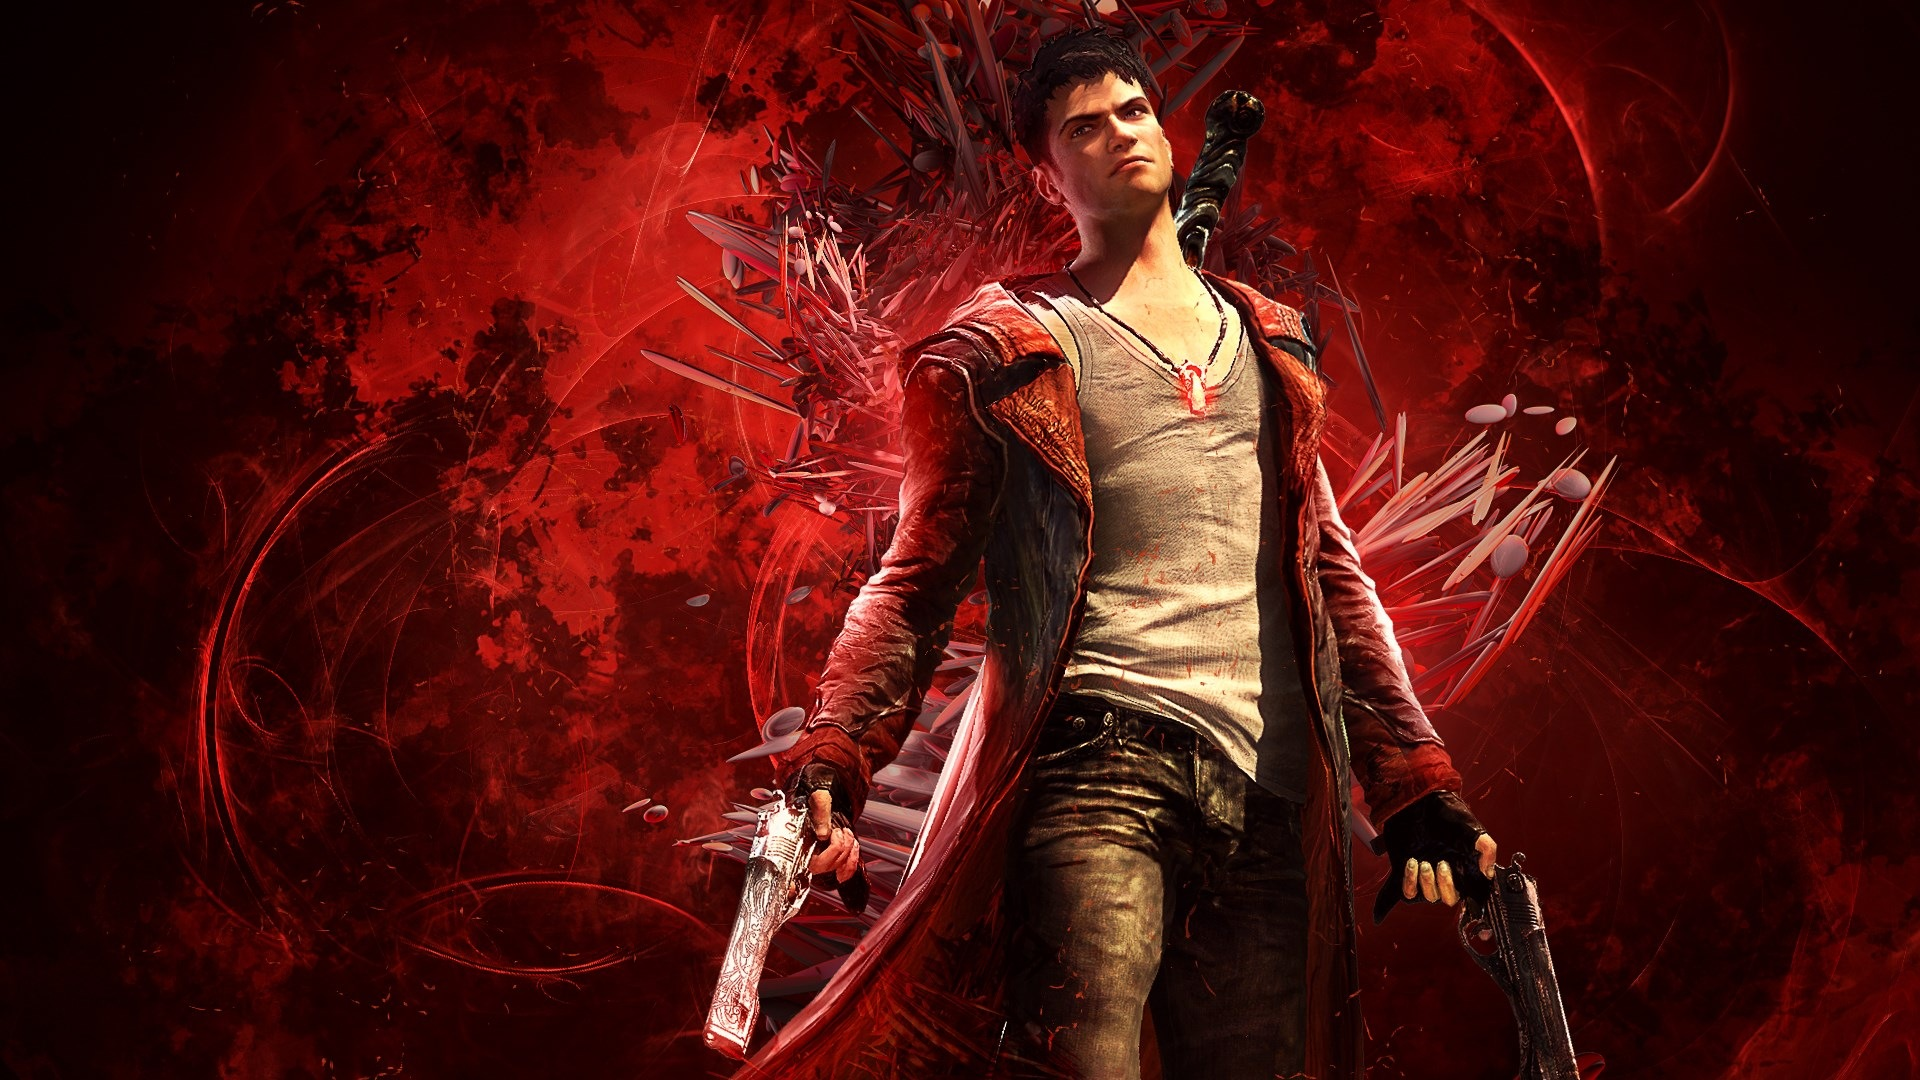 Free Download Devil May Cry Game Hd Wallpaper Ps3 Games Wallpapers